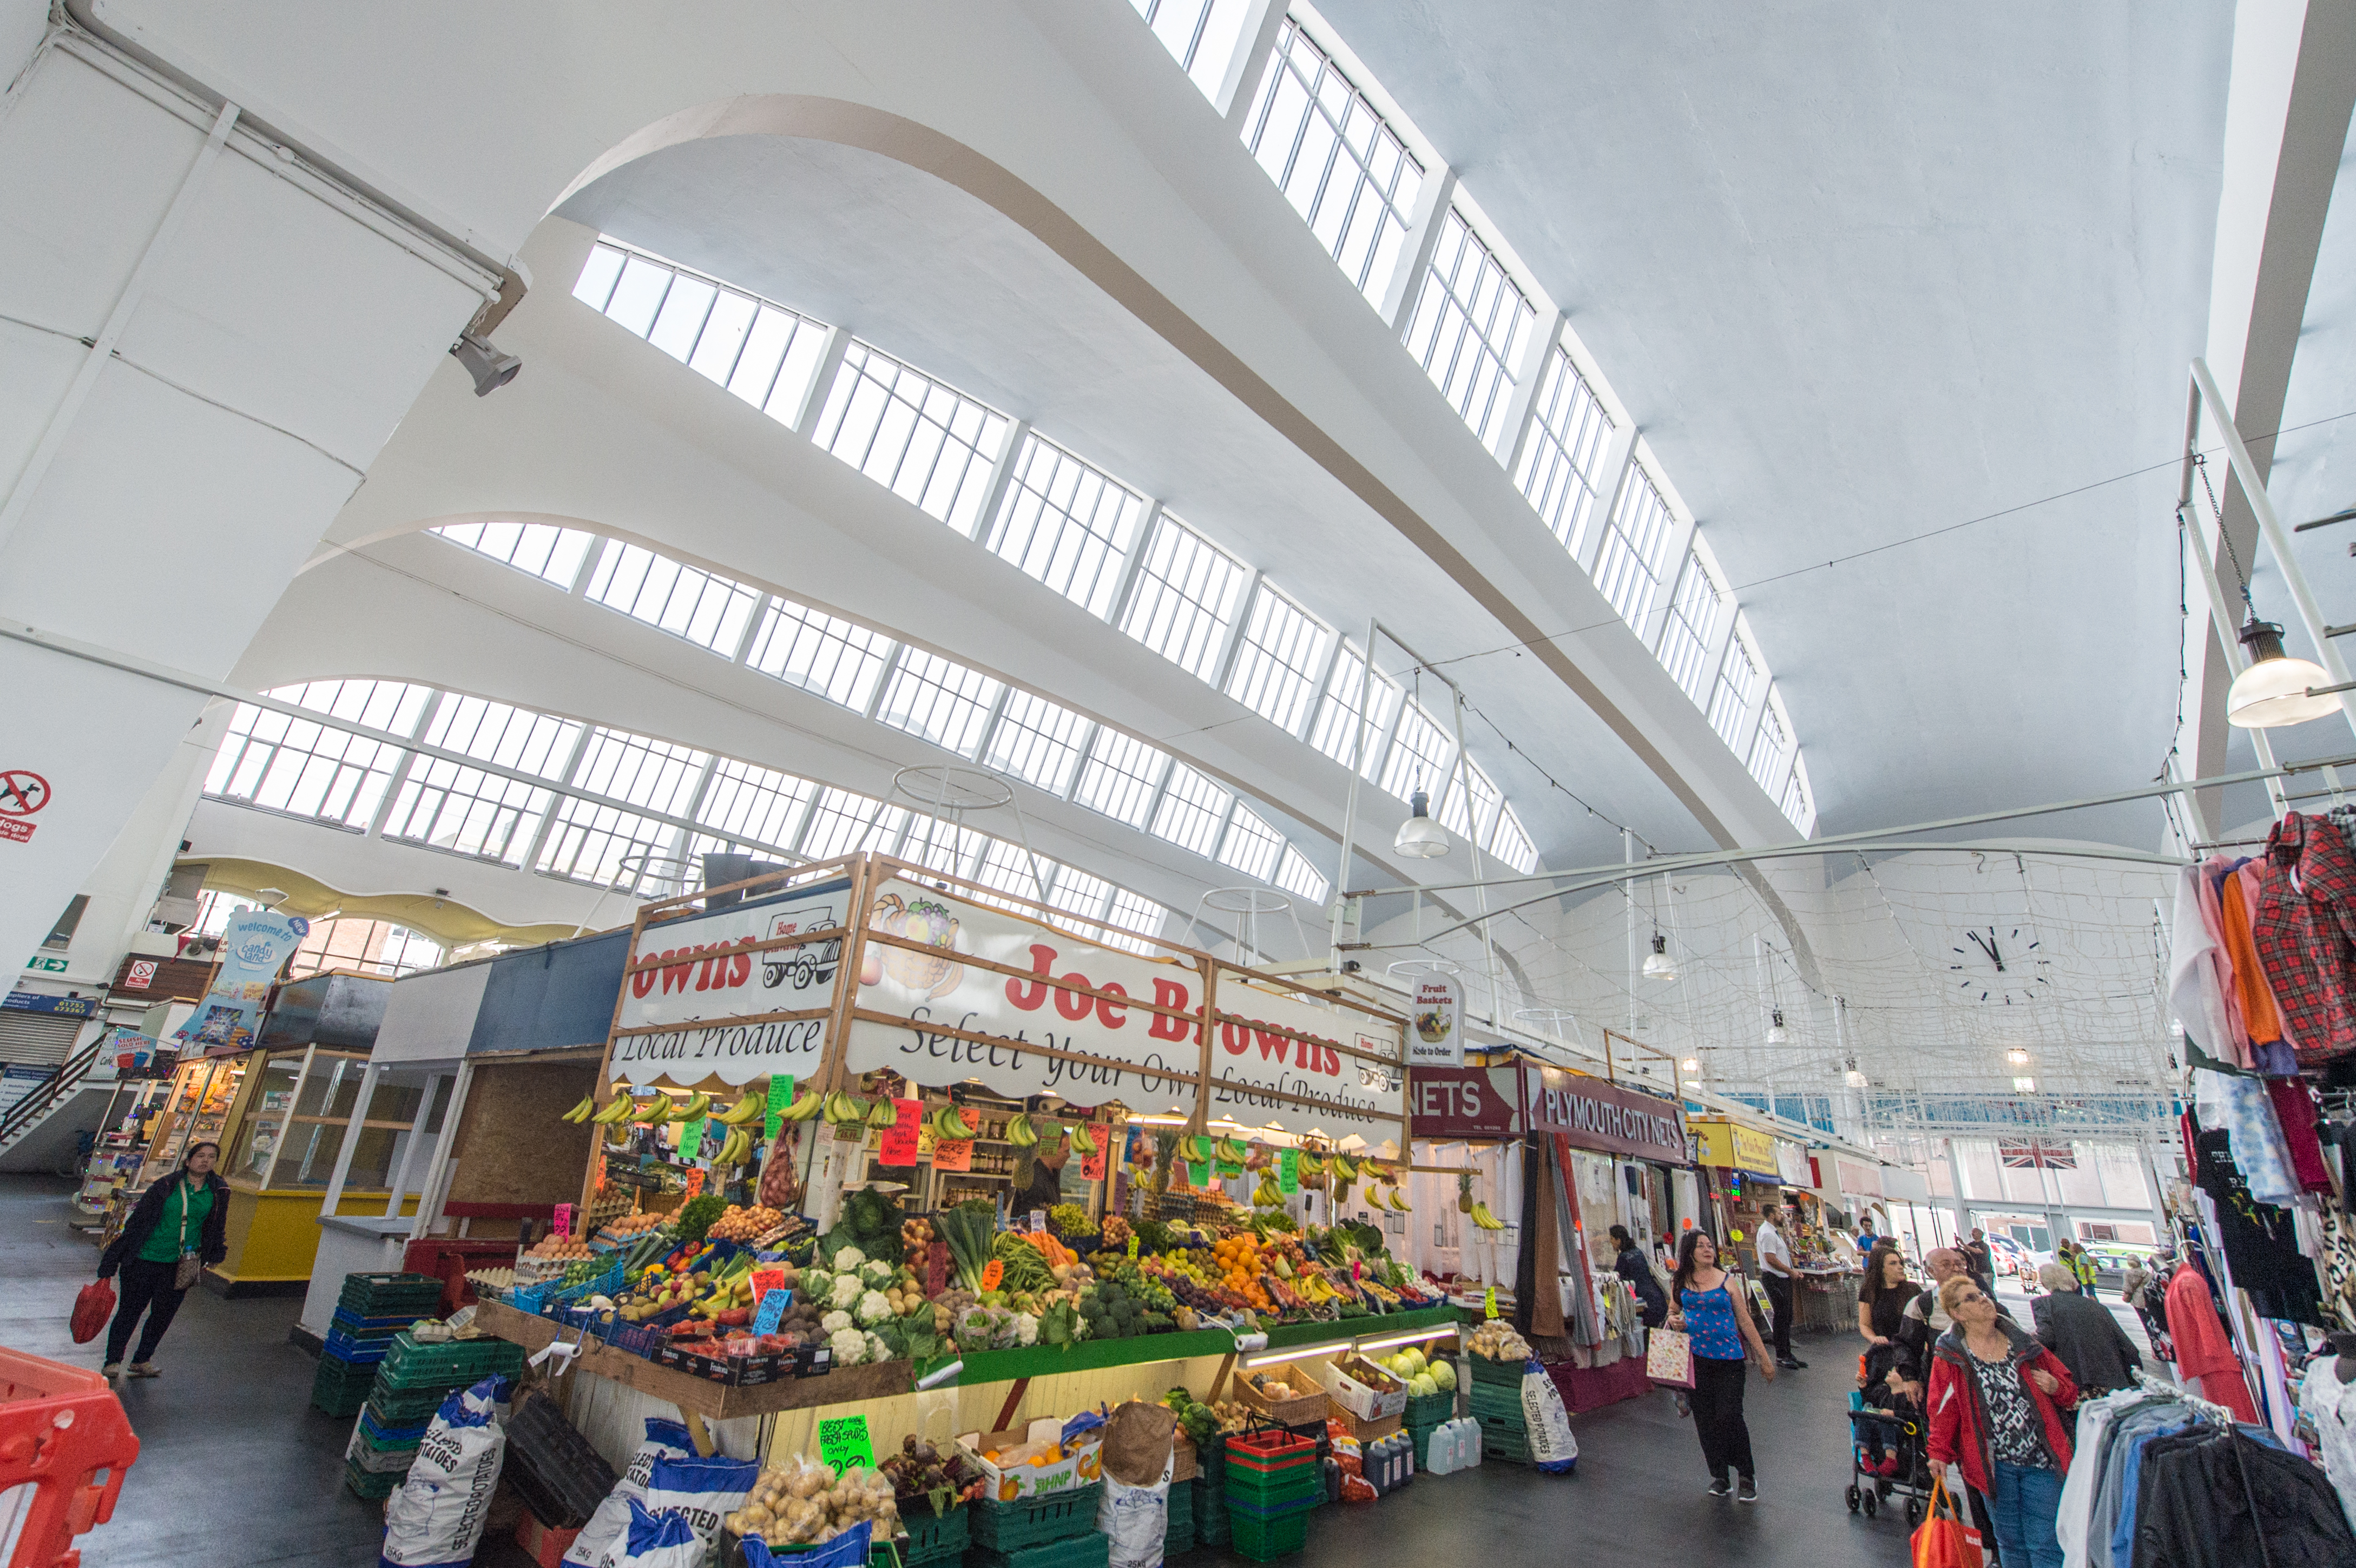 Plymouth Market Ryearch